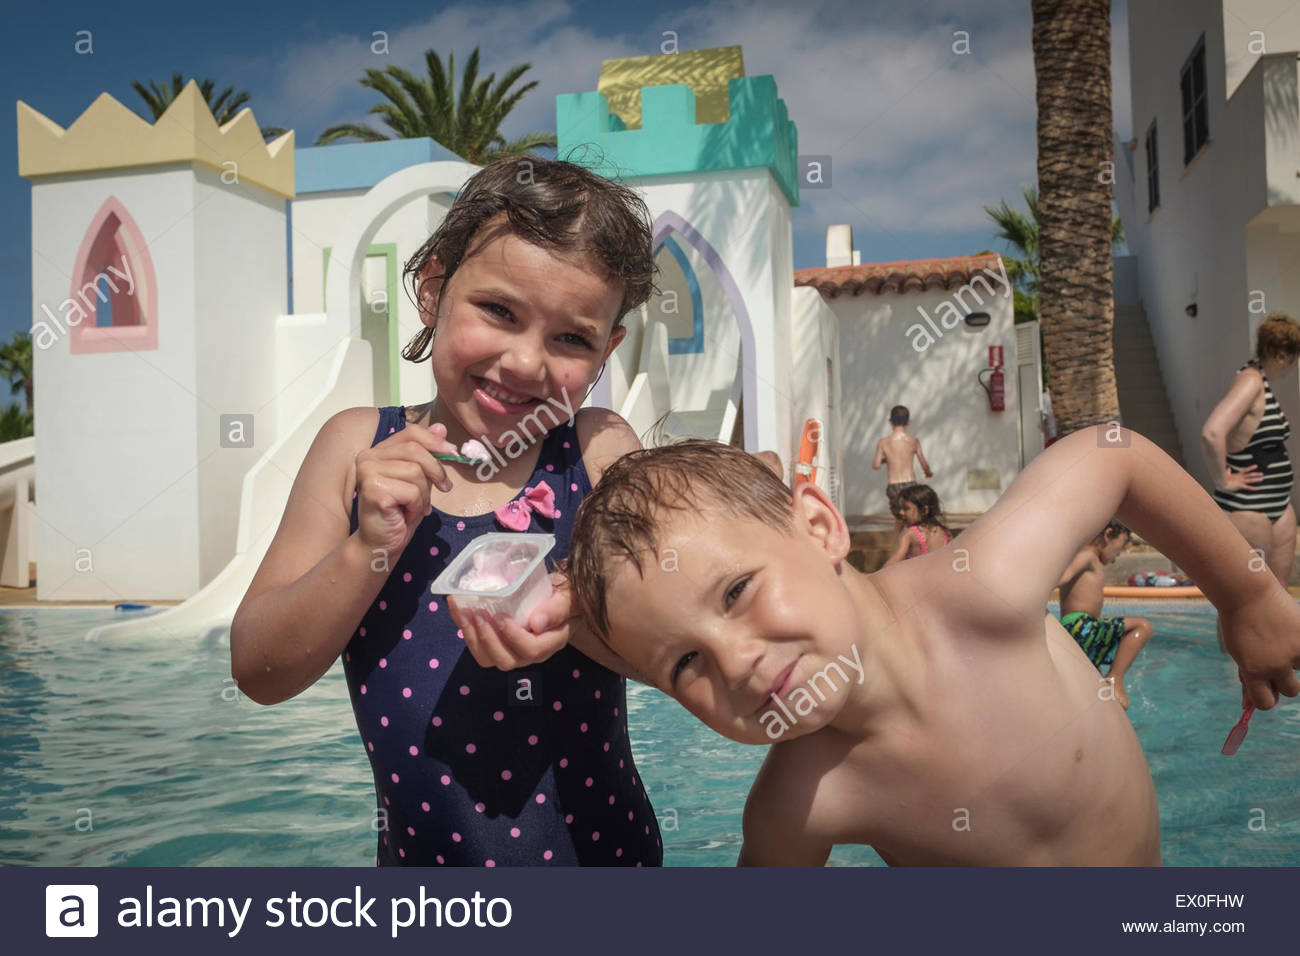 Two kids in a paddling pool on holiday - Stock Image